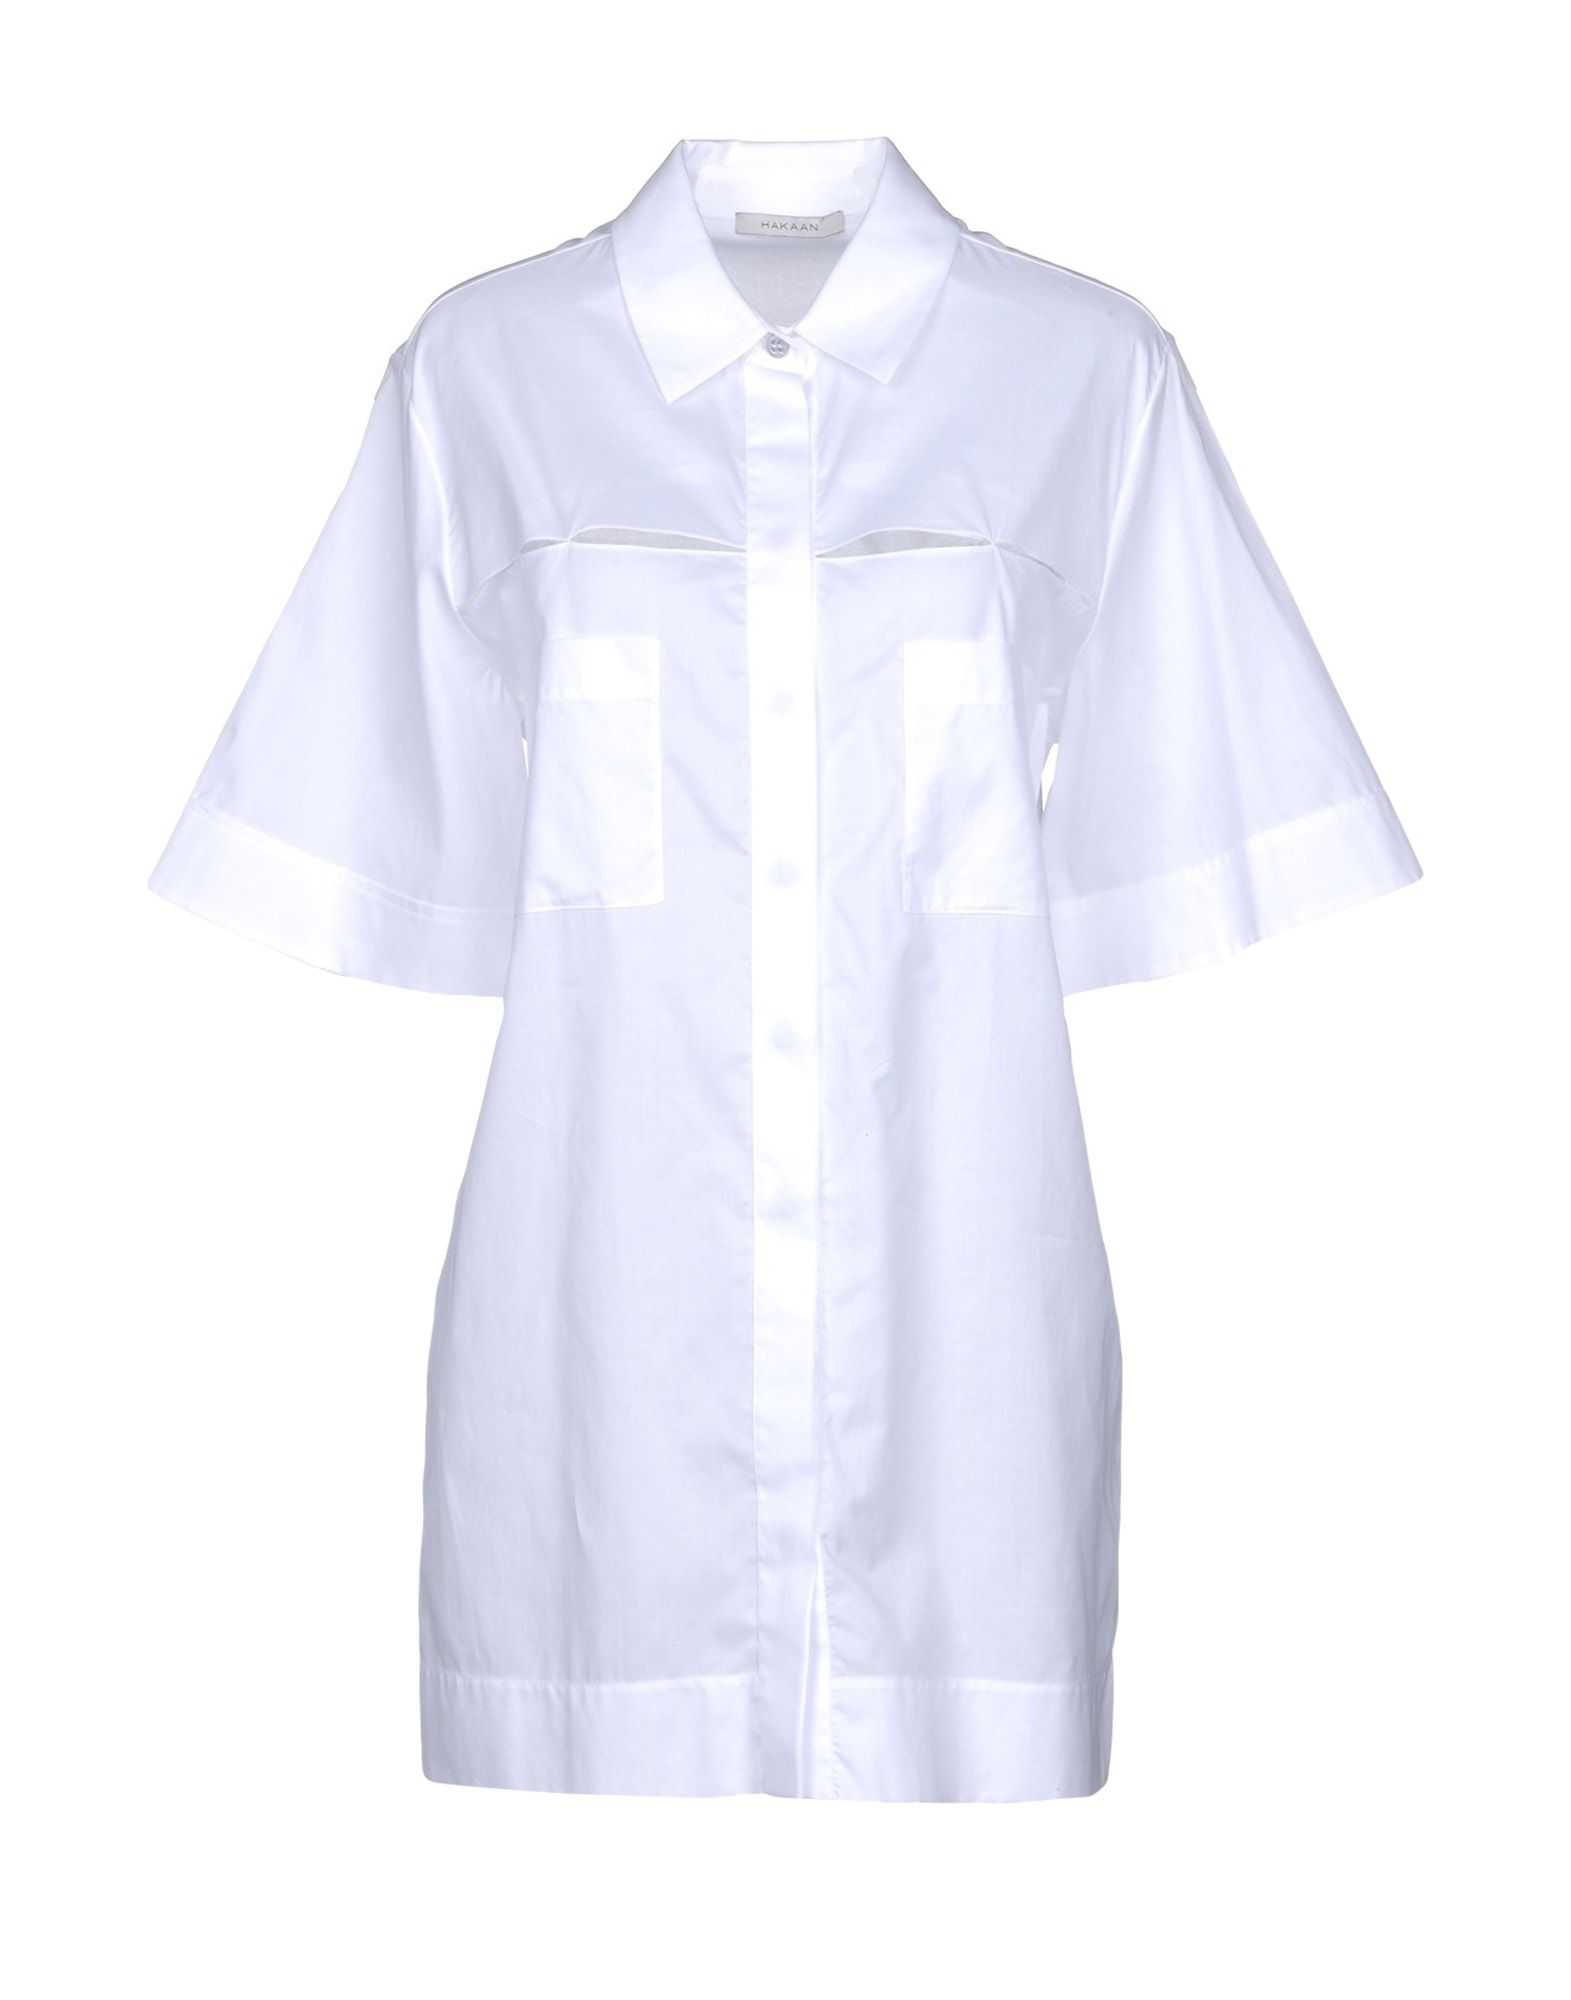 HAKAAN Solid Color Shirts & Blouses in White